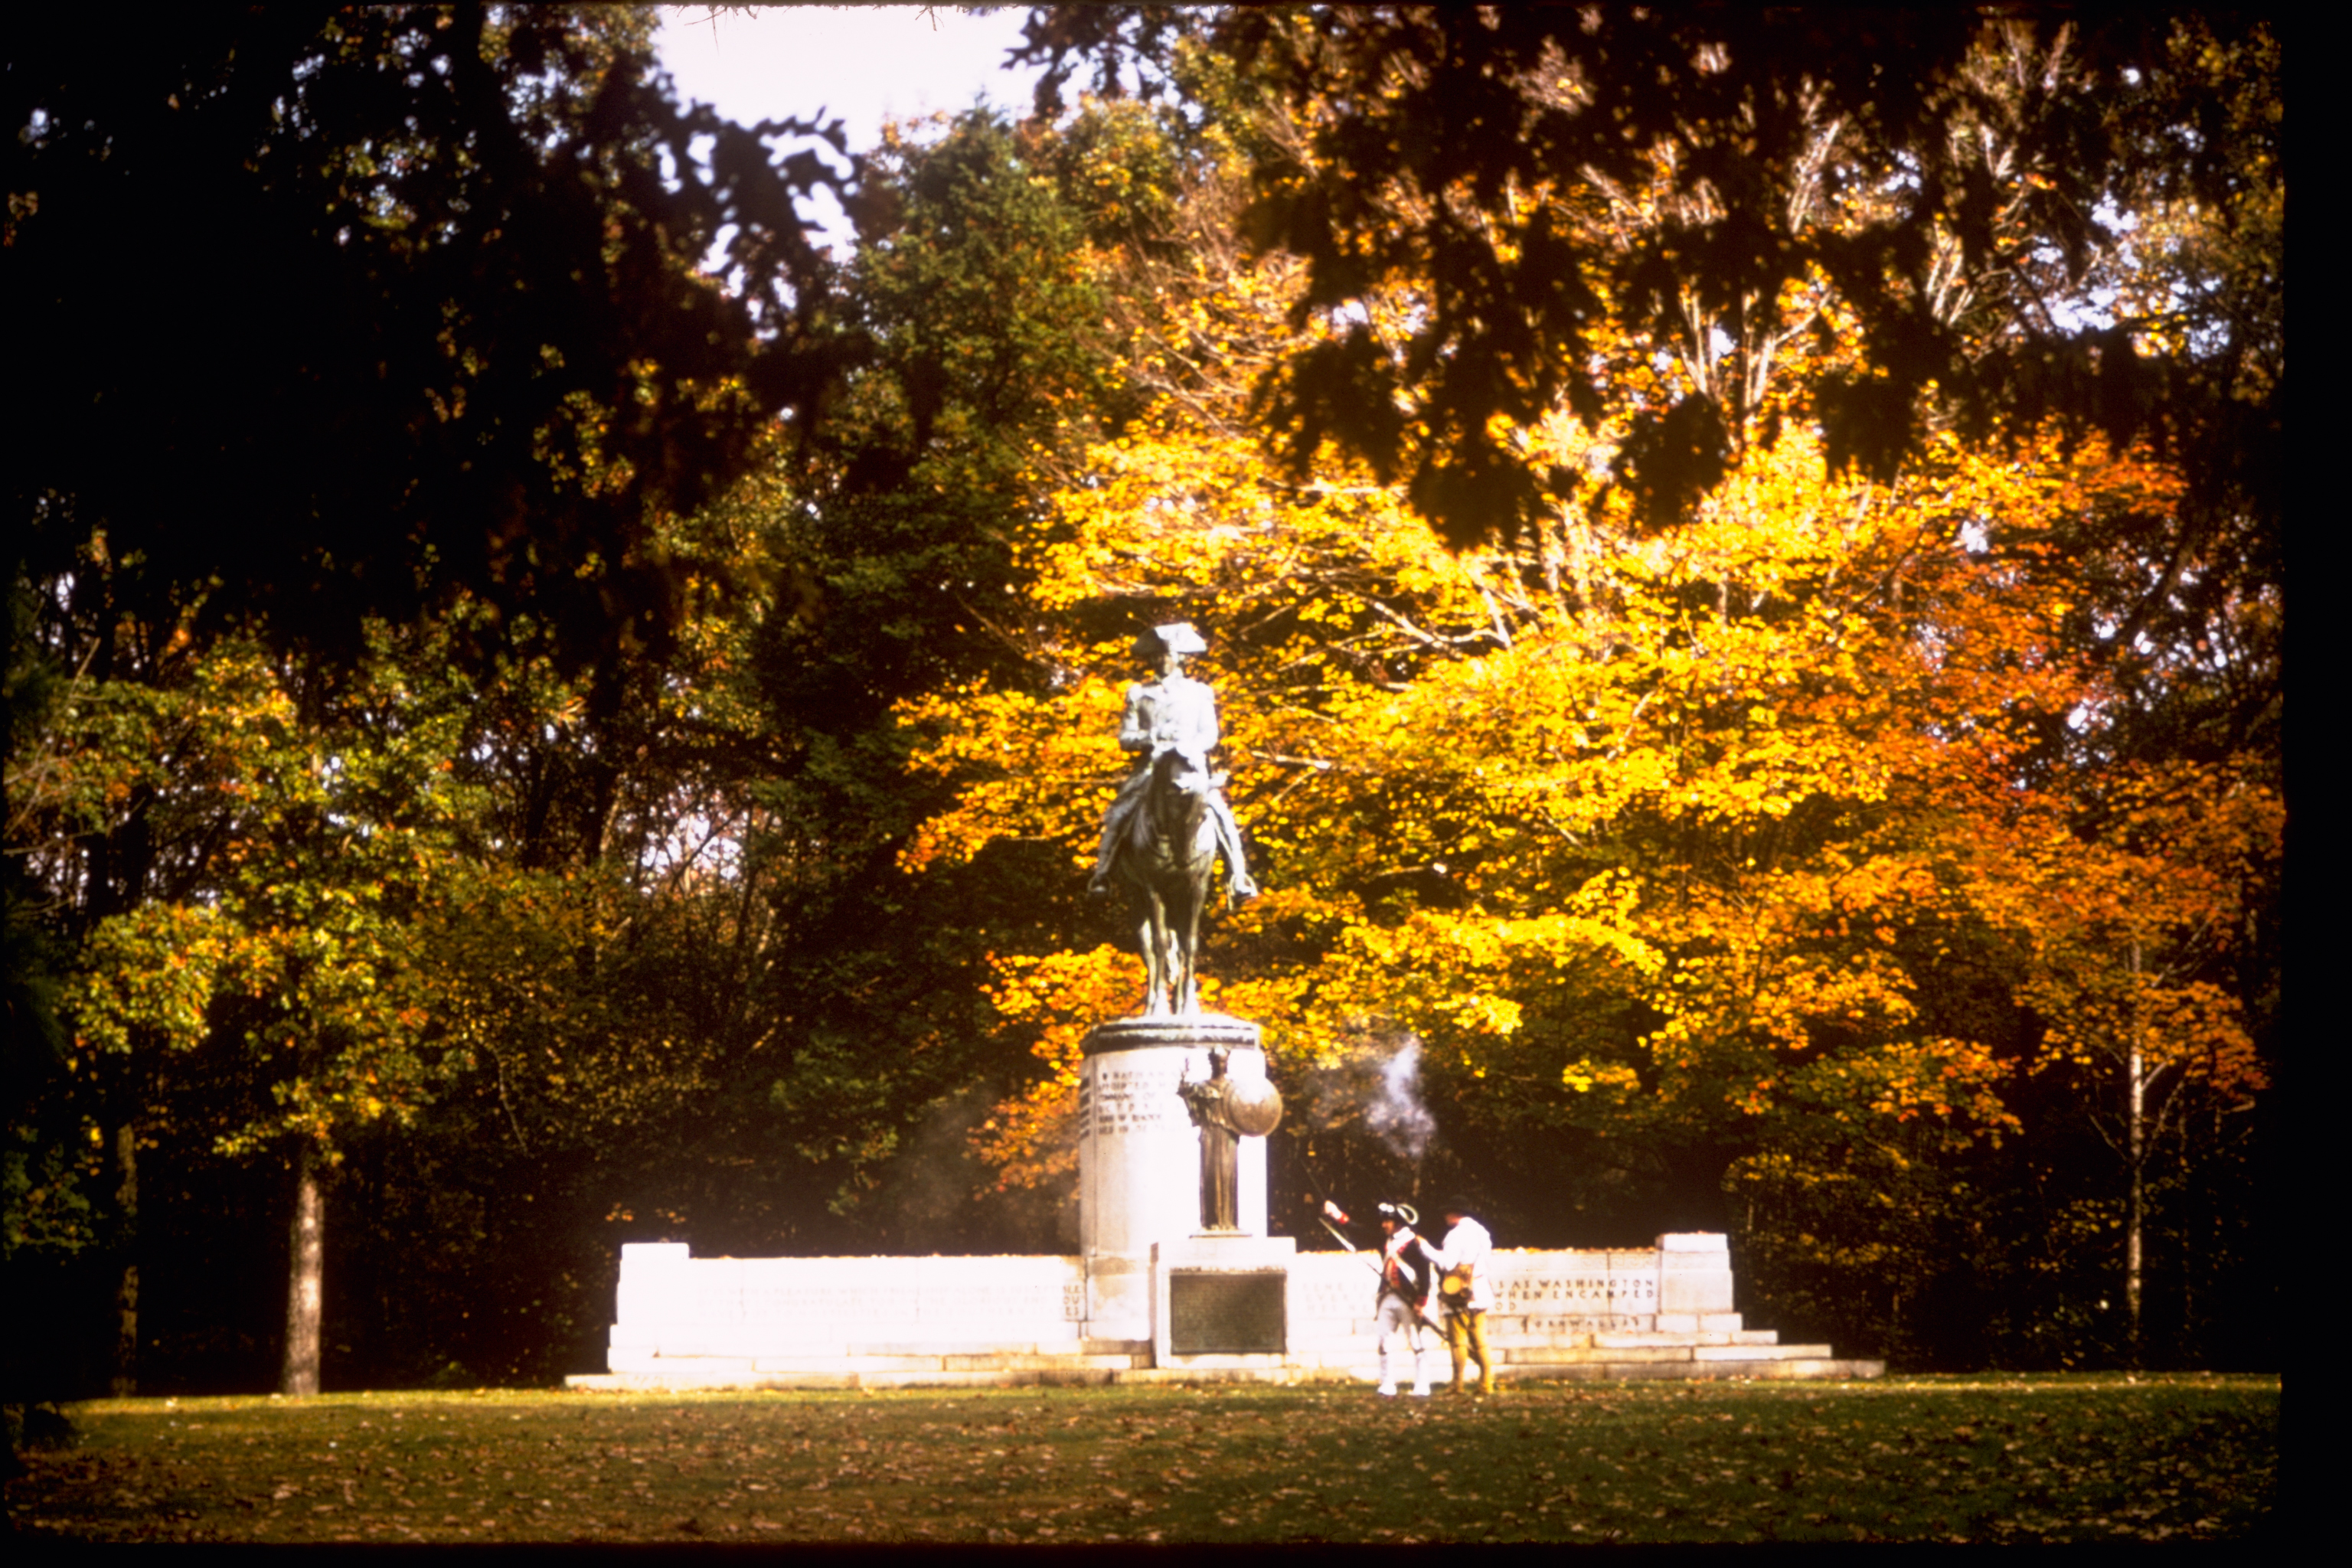 Guilford Courthouse National Military Park Statue